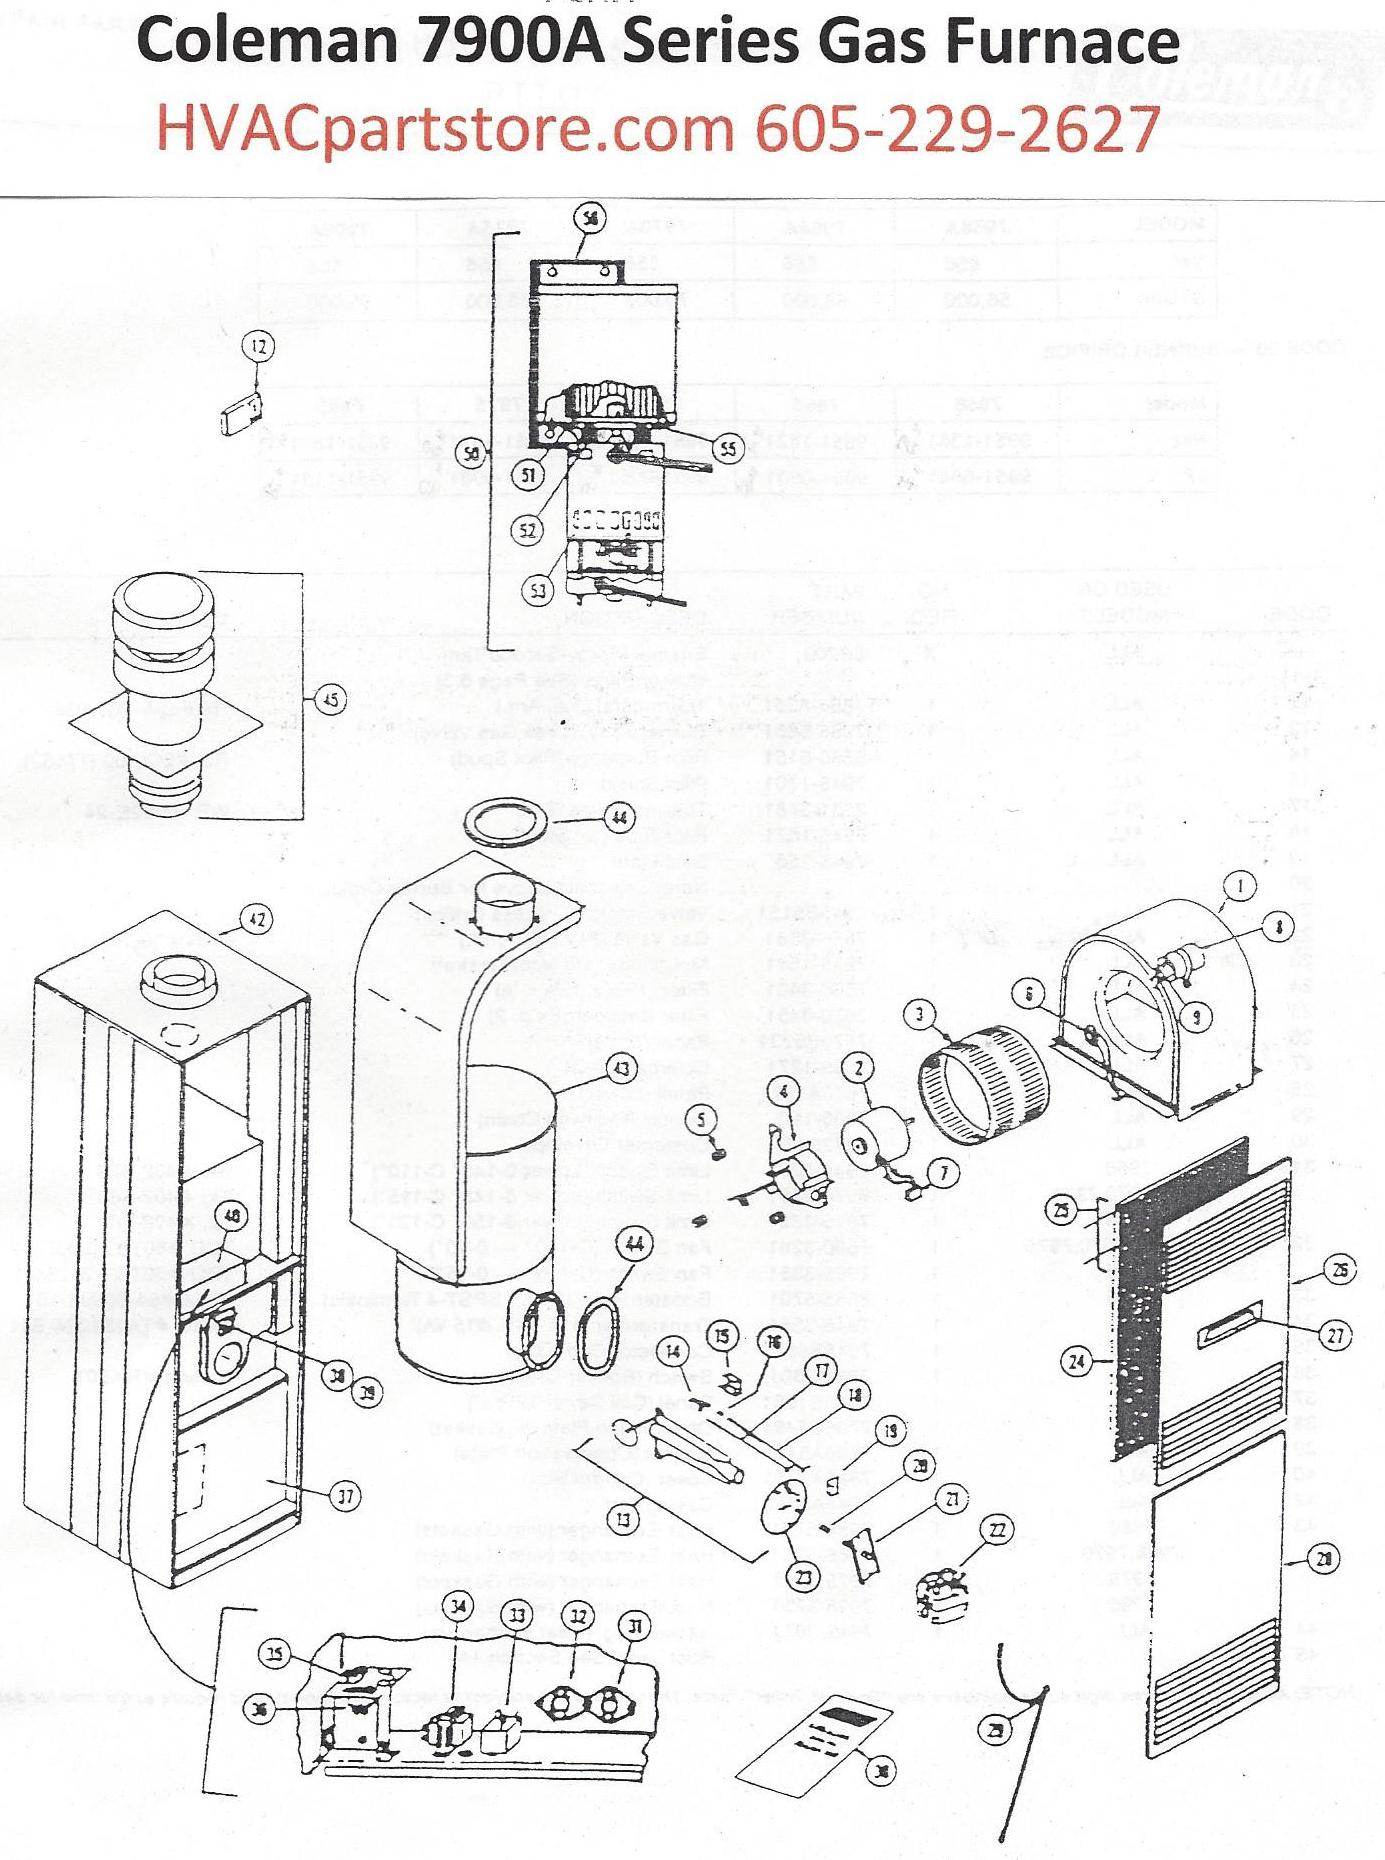 7956a856 Coleman Gas Furnace Parts on gas furnace thermocouple wiring diagram